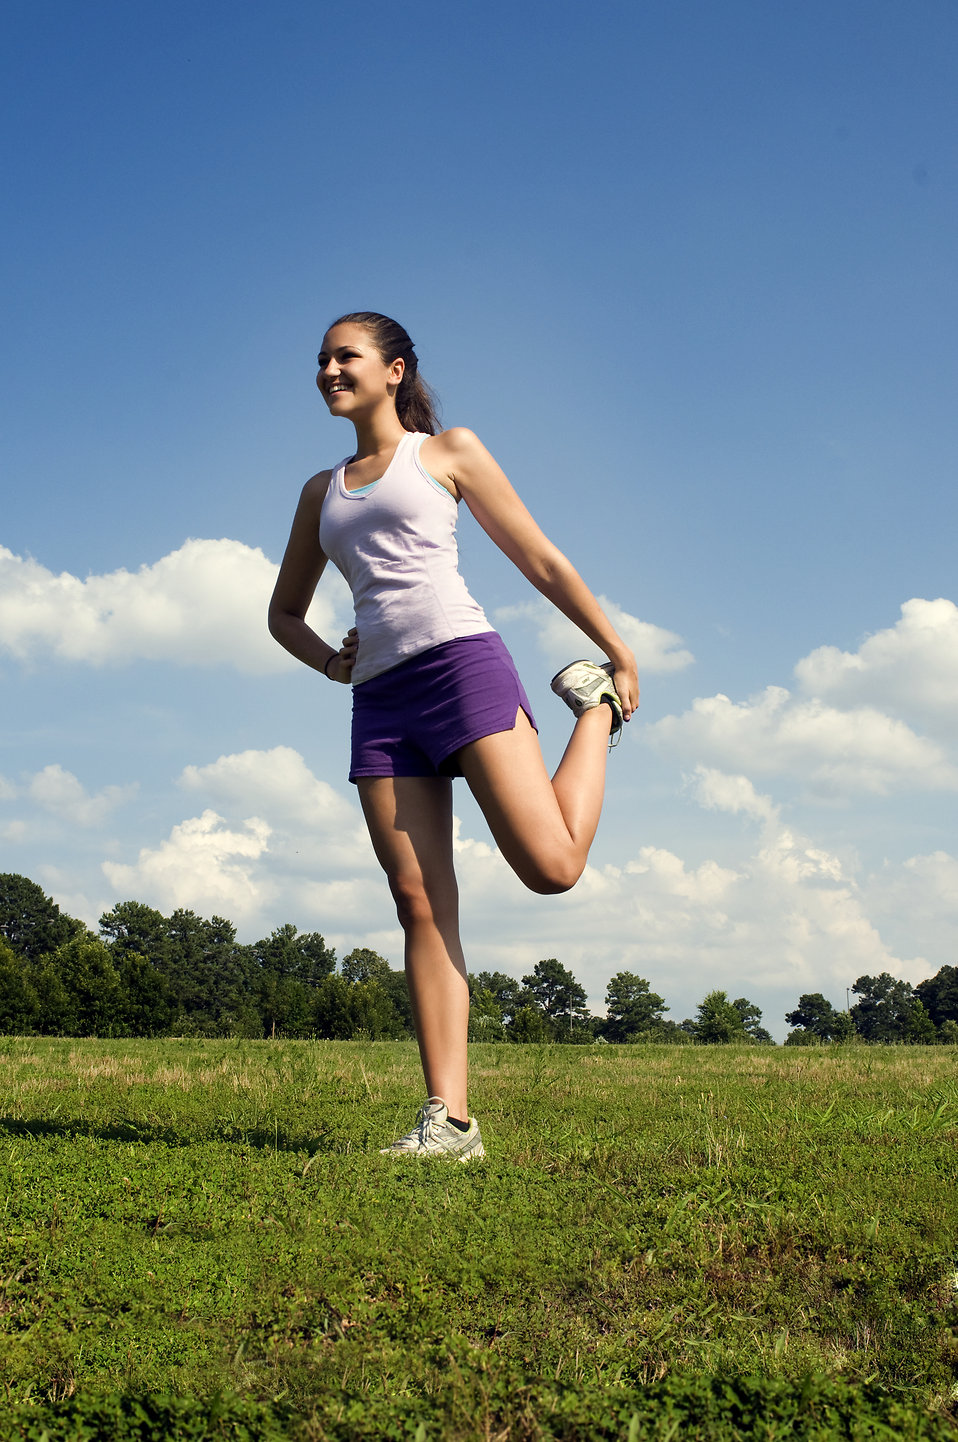 A young woman stretching outdoors before exercising : Free Stock Photo